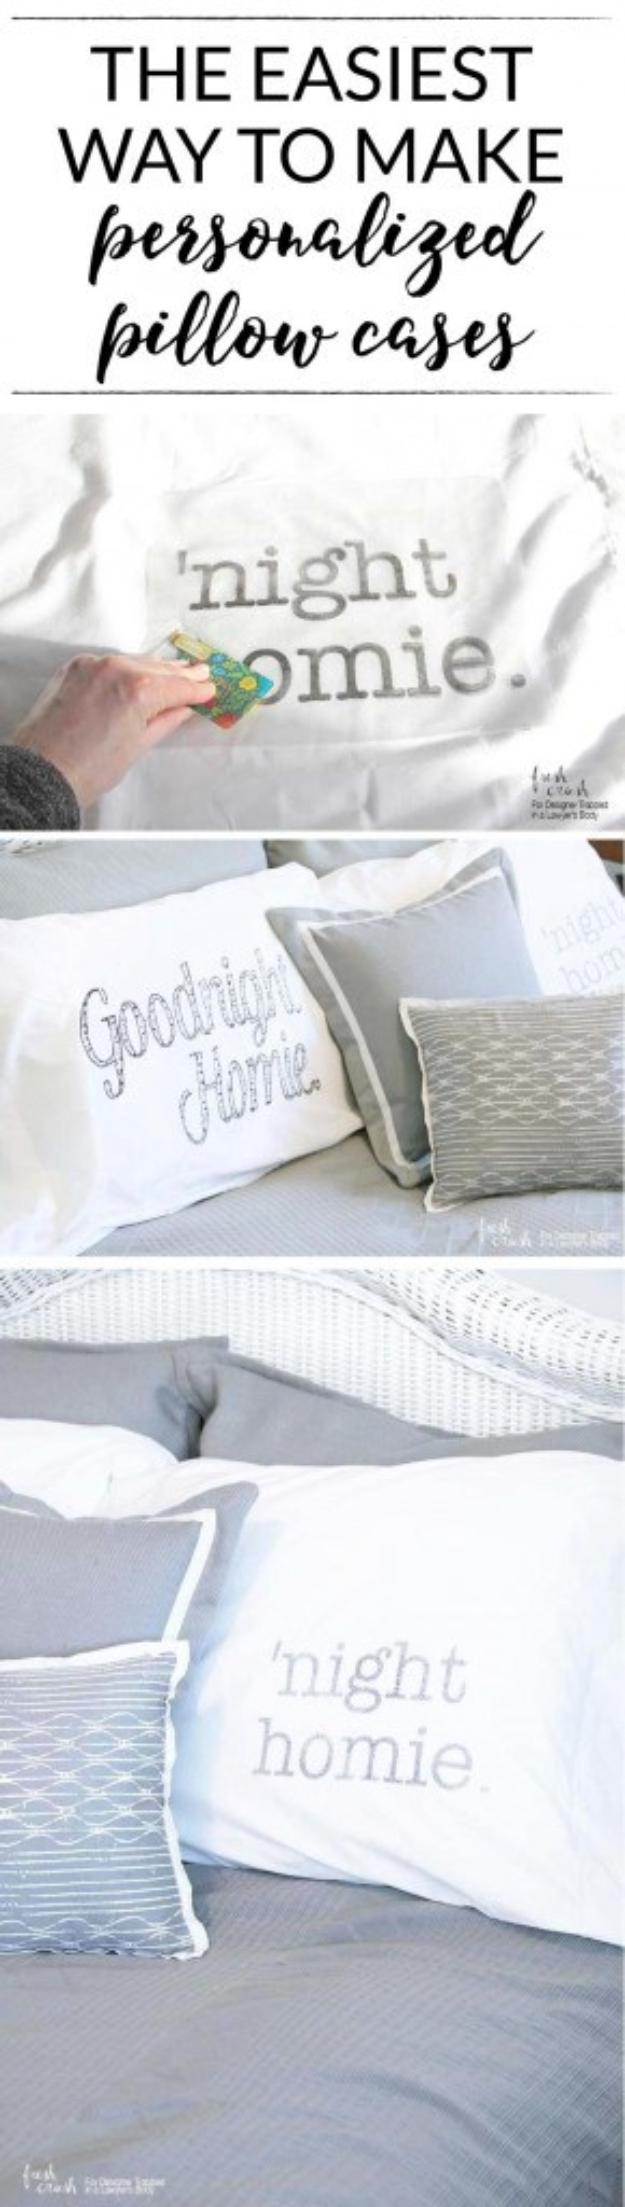 DIY Pillowcases - DIY Personalized Pillow Case - Easy Sewing Projects for Pillows - Bedroom and Home Decor Ideas - Sewing Patterns and Tutorials - No Sew Ideas - DIY Projects and Crafts for Women #sewing #diydecor #pillows